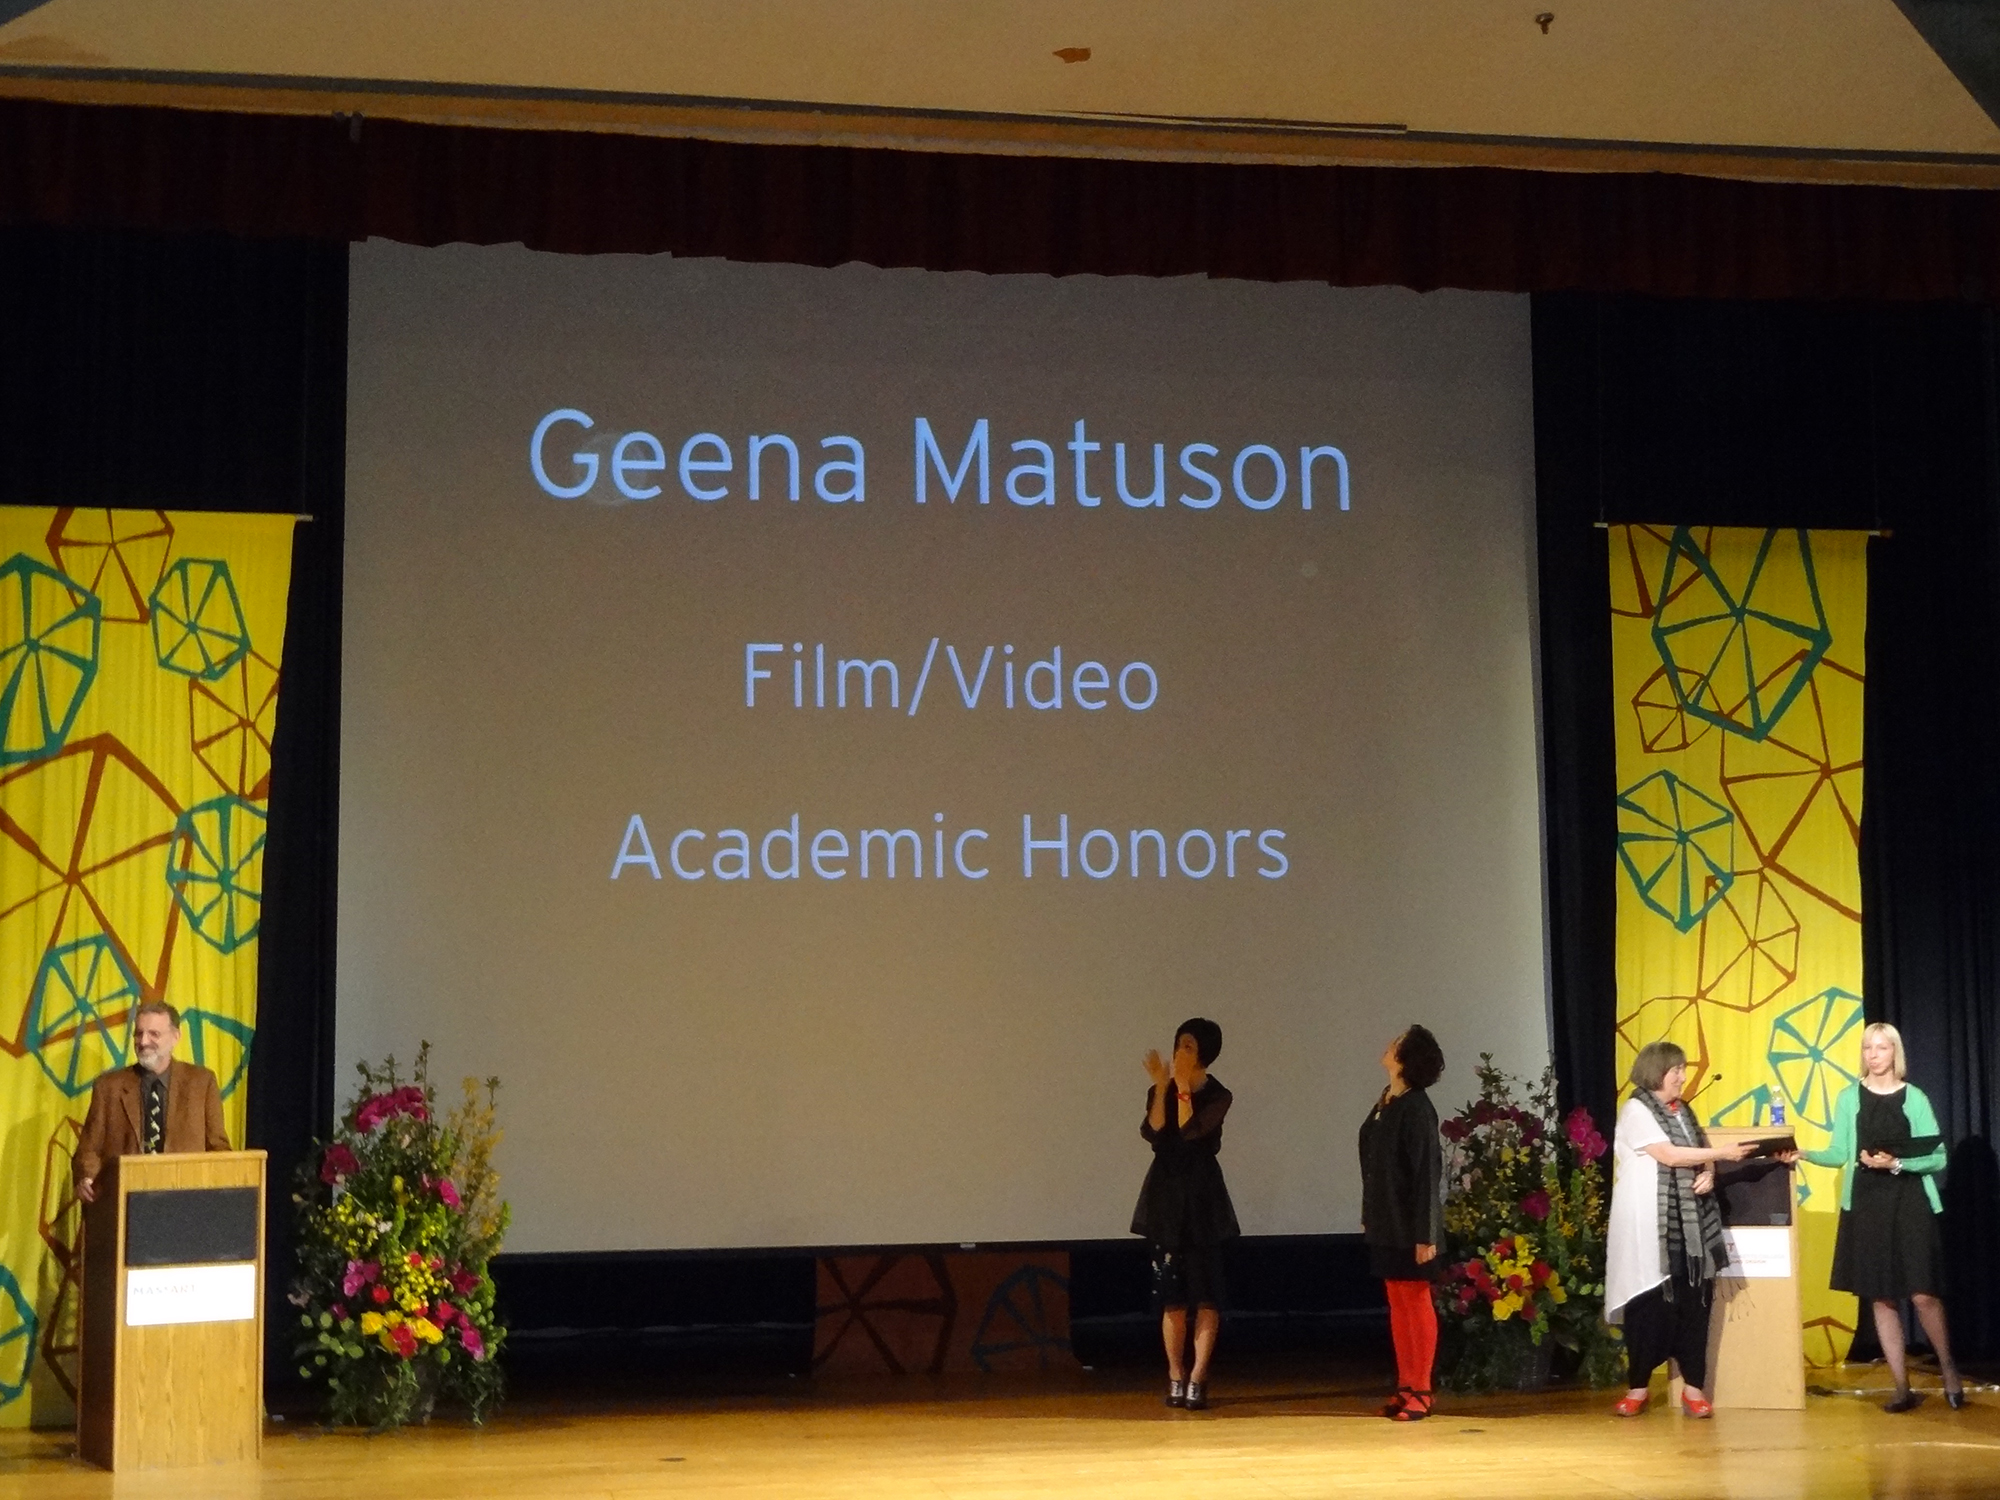 Geena Matuson (@geenamatuson) receives Academic Honors and an award from the Film/Video department at MassArt, 2013.